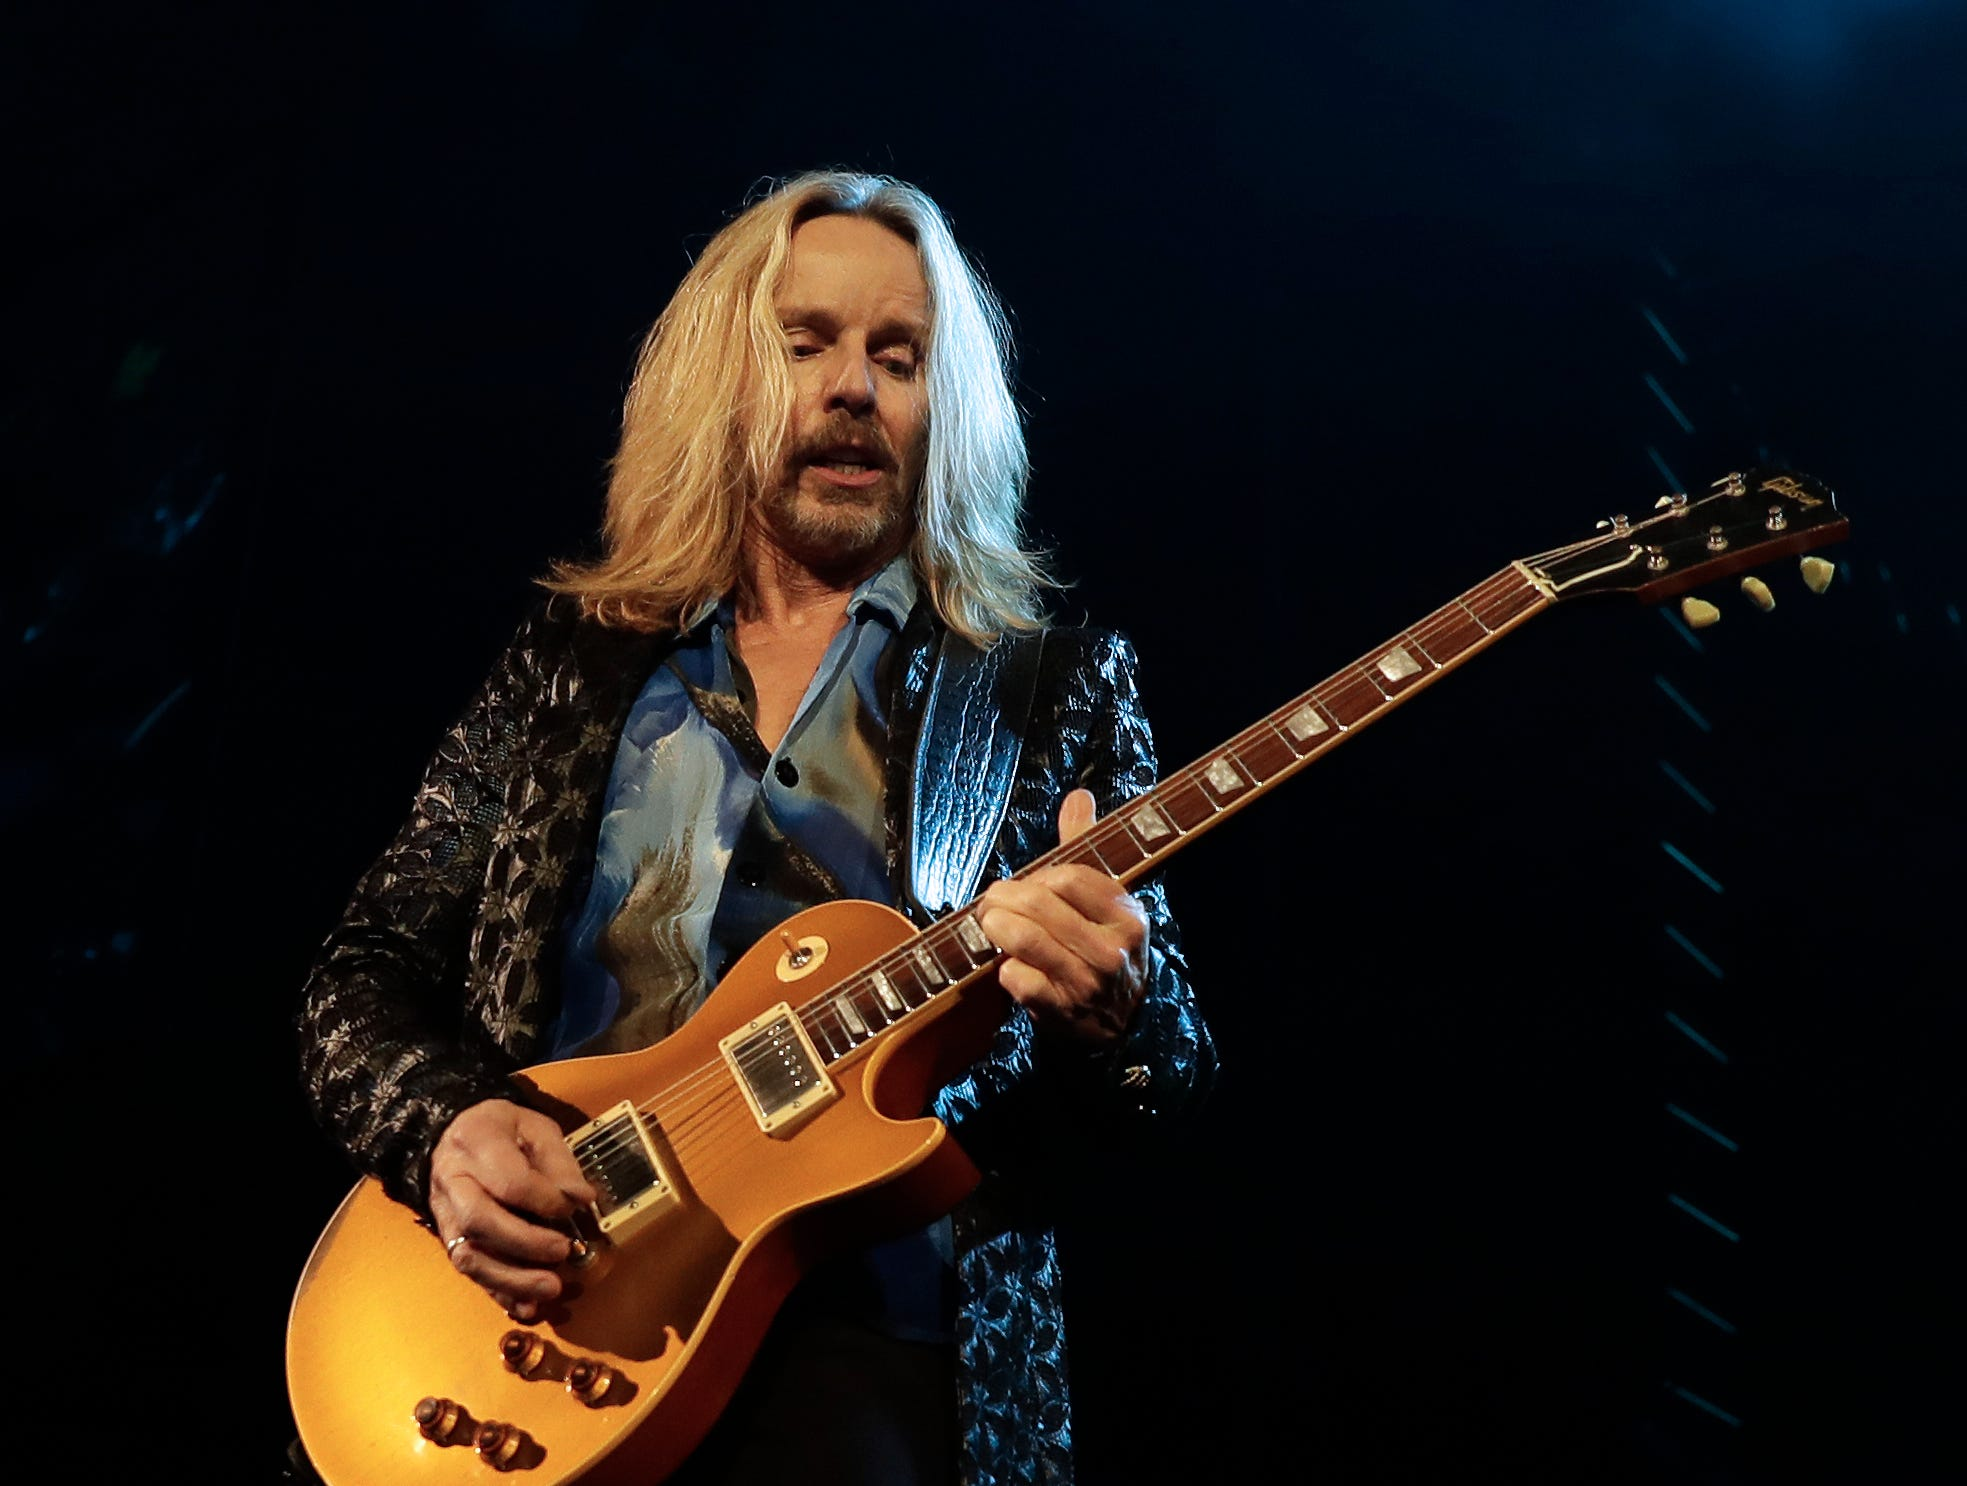 Tommy Shaw of Styx performs Dec. 29, 2018 at the Resch Center in Ashwaubenon, Wis.